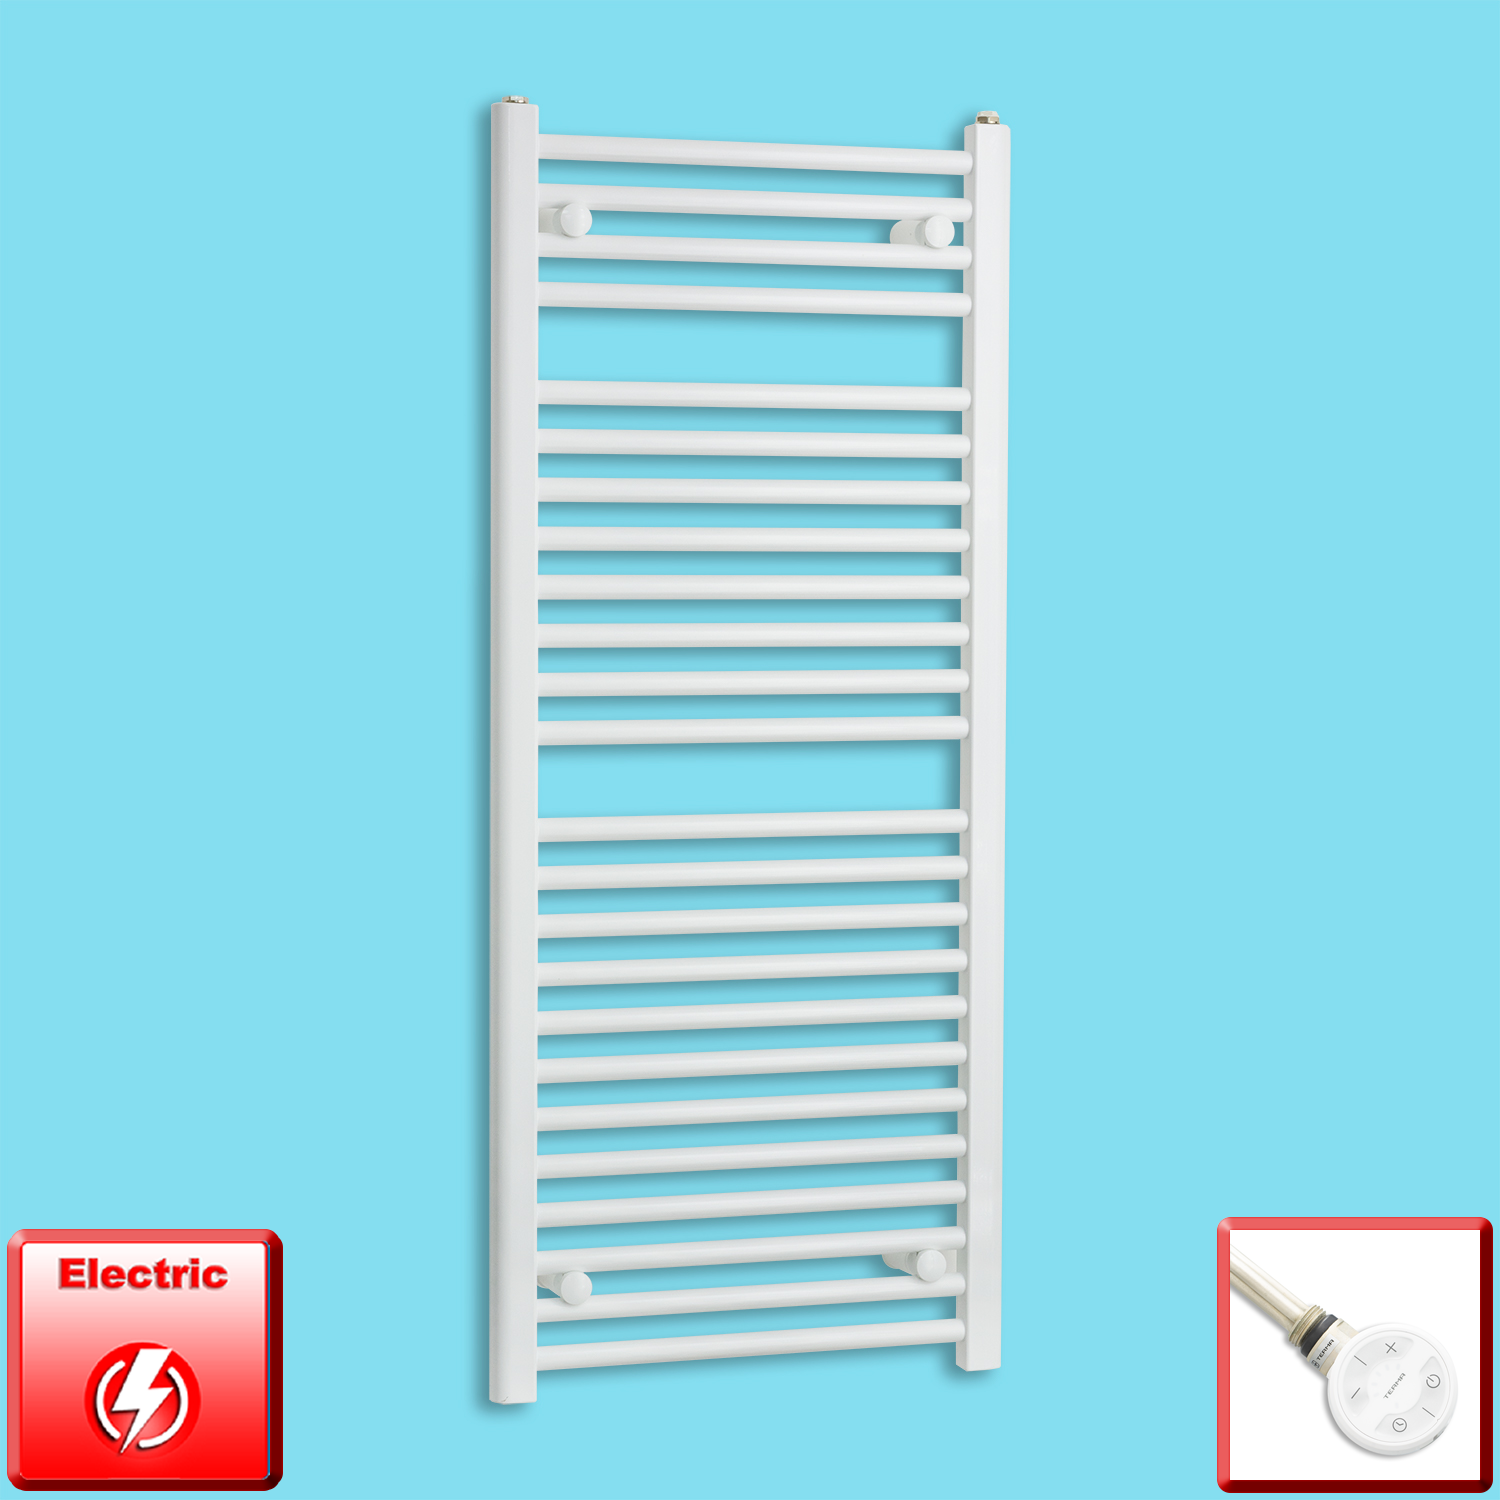 400mm Wide 1200mm High Pre-Filled White Electric Towel Rail Radiator With Thermostatic MOA Element